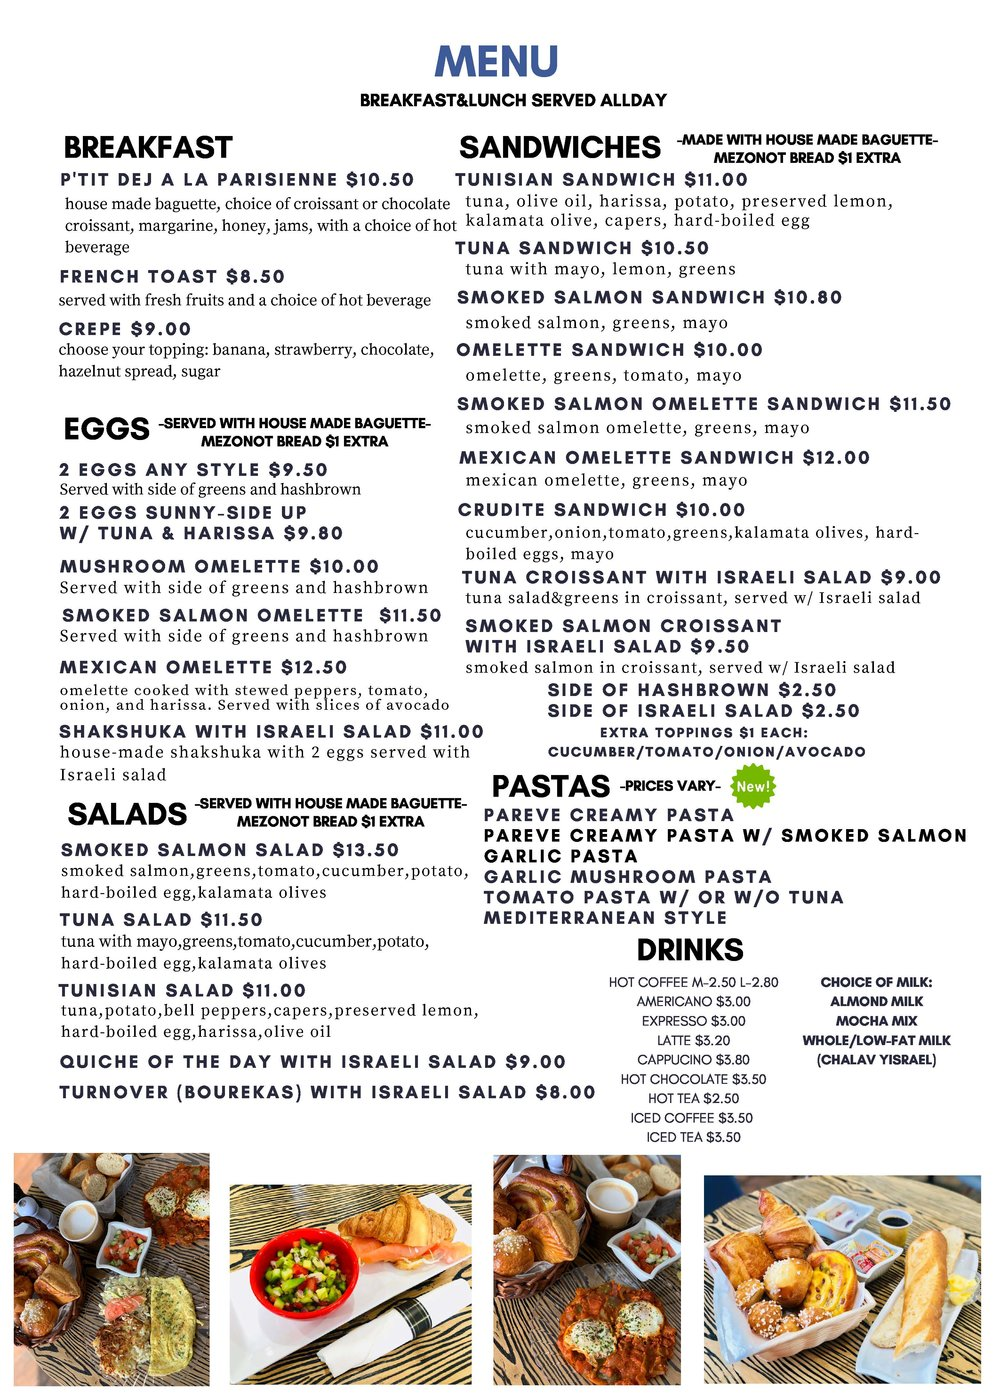 La Parisienne Menu Flyer_Page_2.jpg